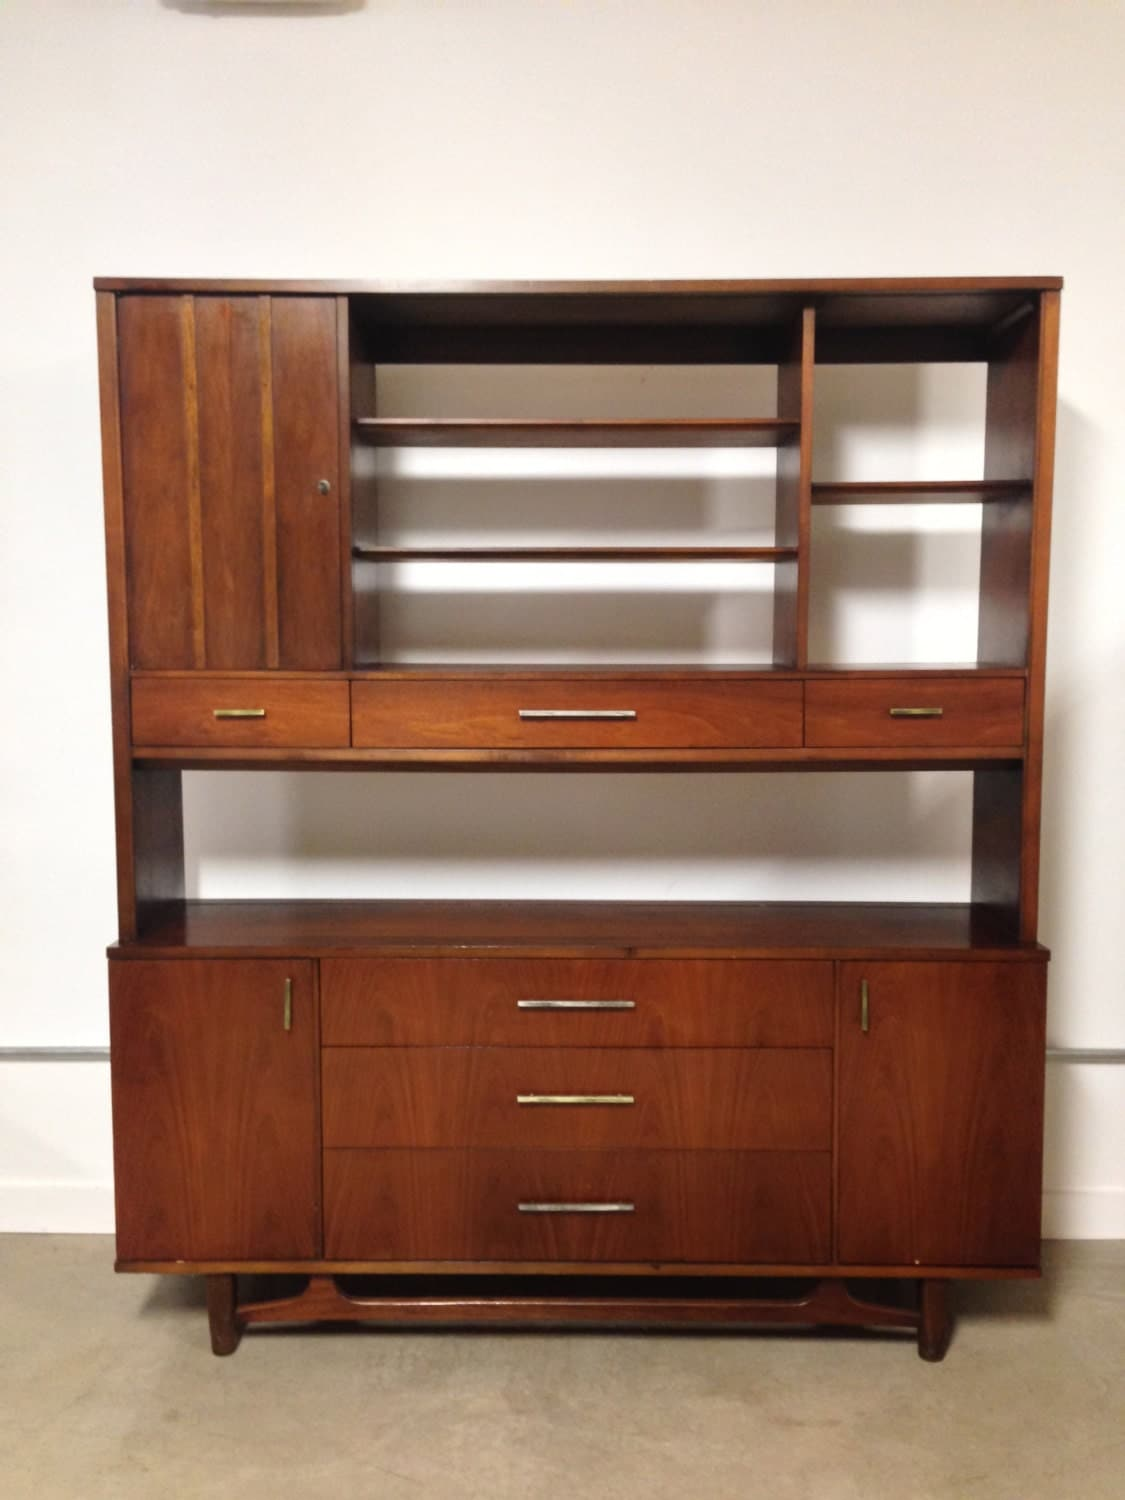 mid century modern china cabinet for display and storage. Black Bedroom Furniture Sets. Home Design Ideas